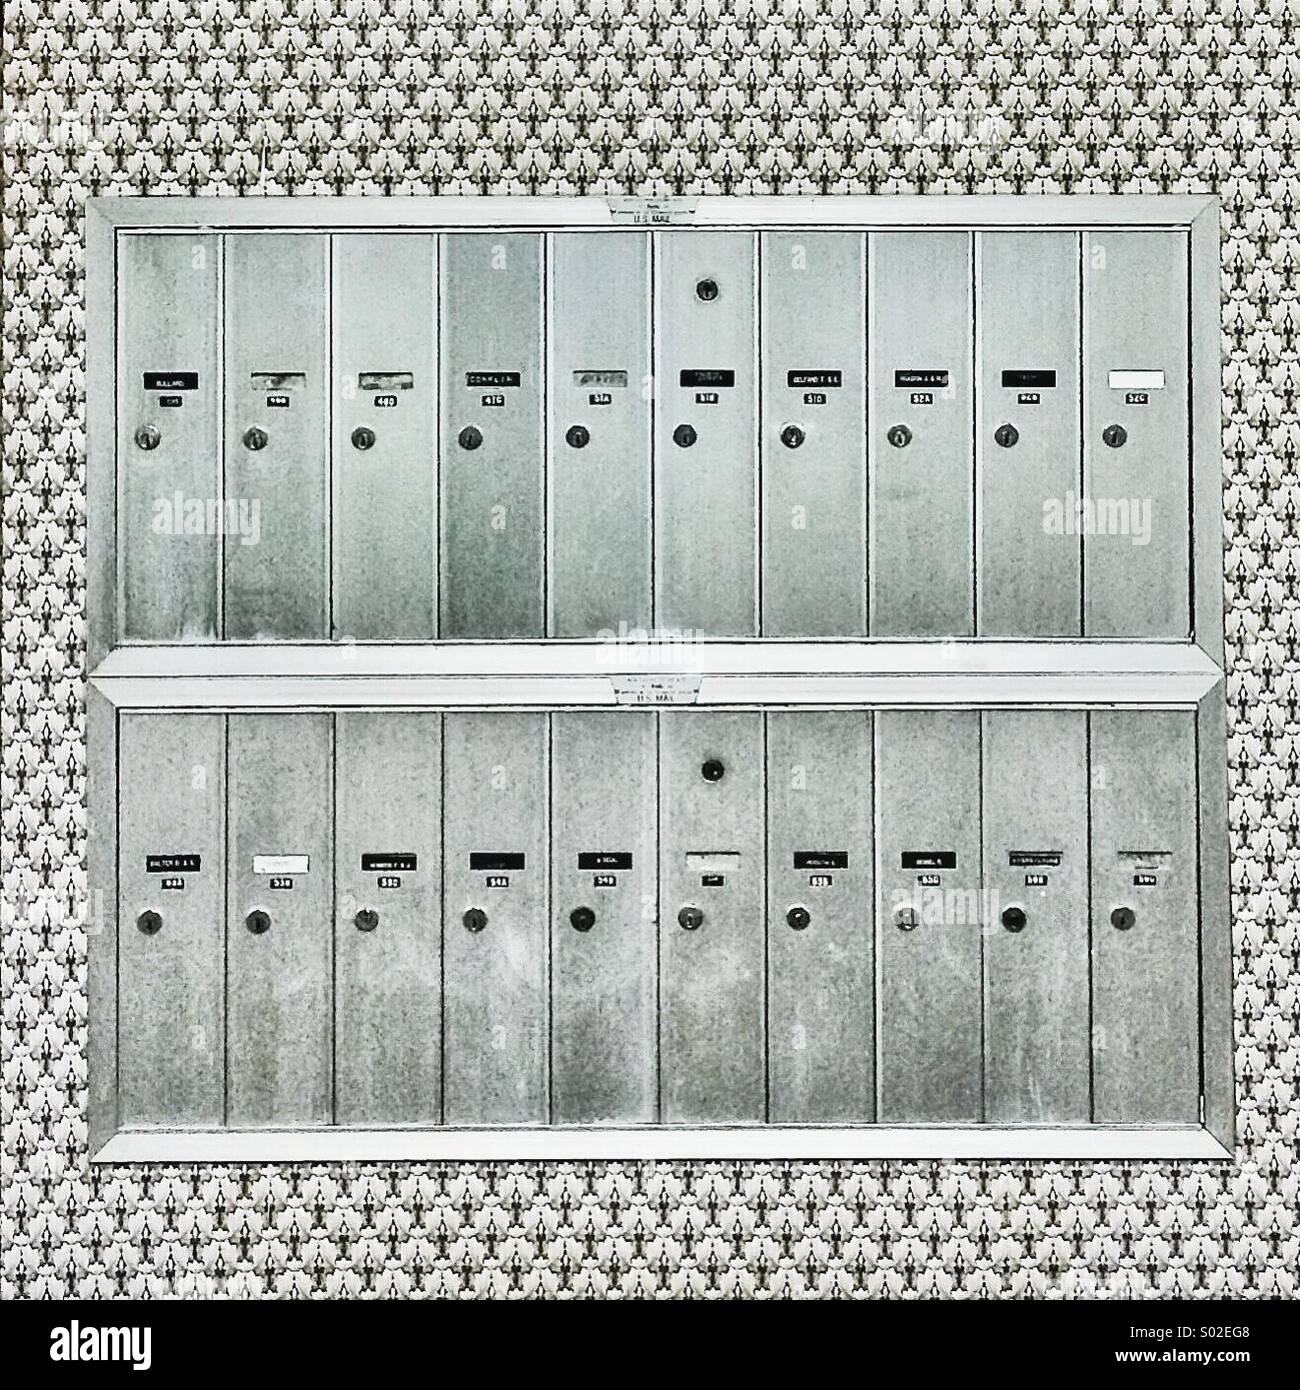 Mailboxes and surrounding patterns - Stock Image